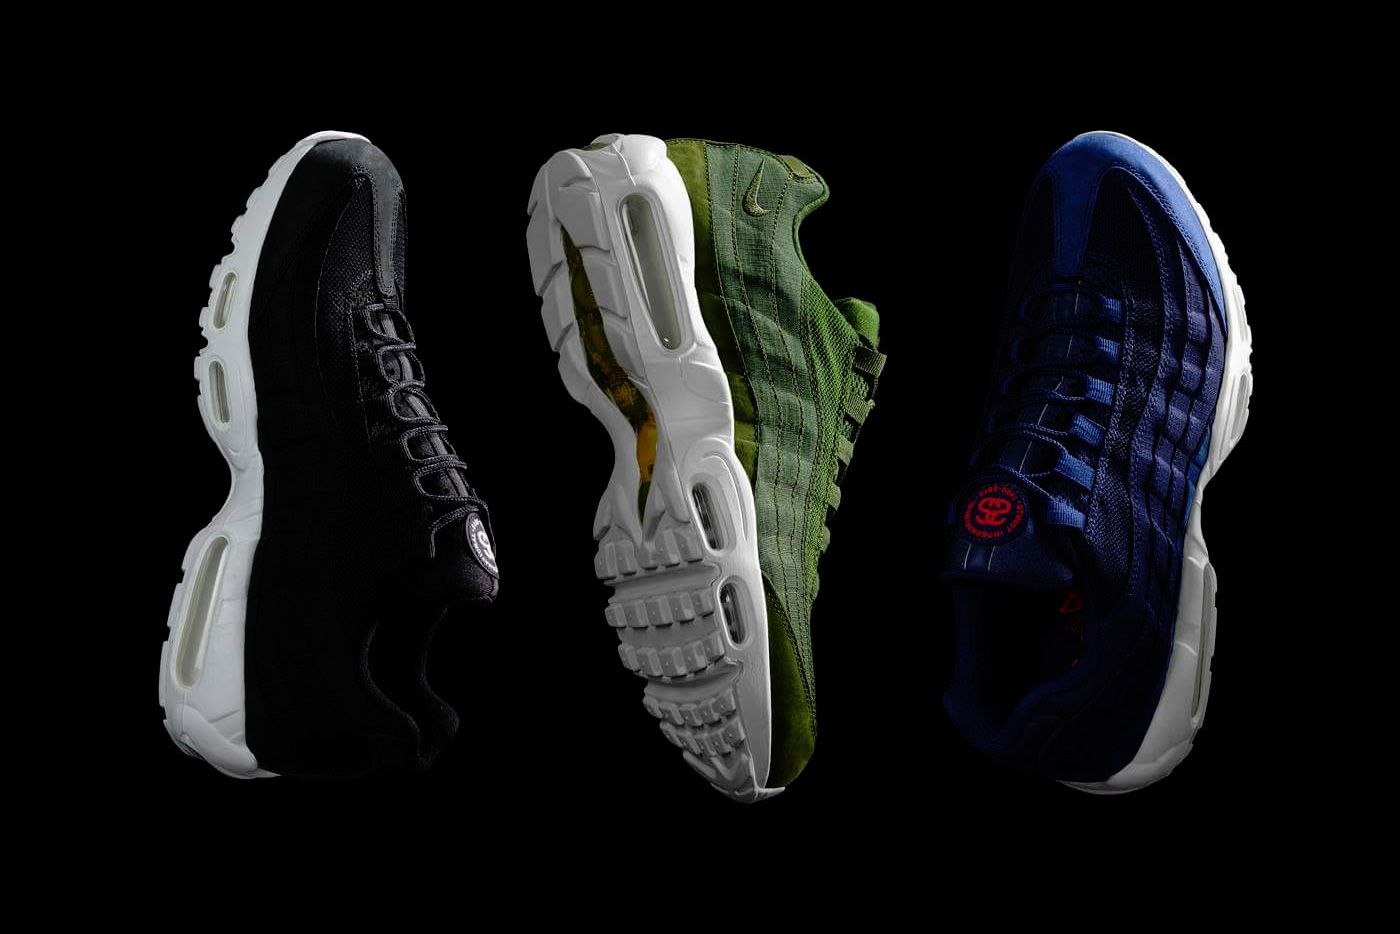 Supreme x Nike Air Max 96 Made in Italy: Release Date & Info